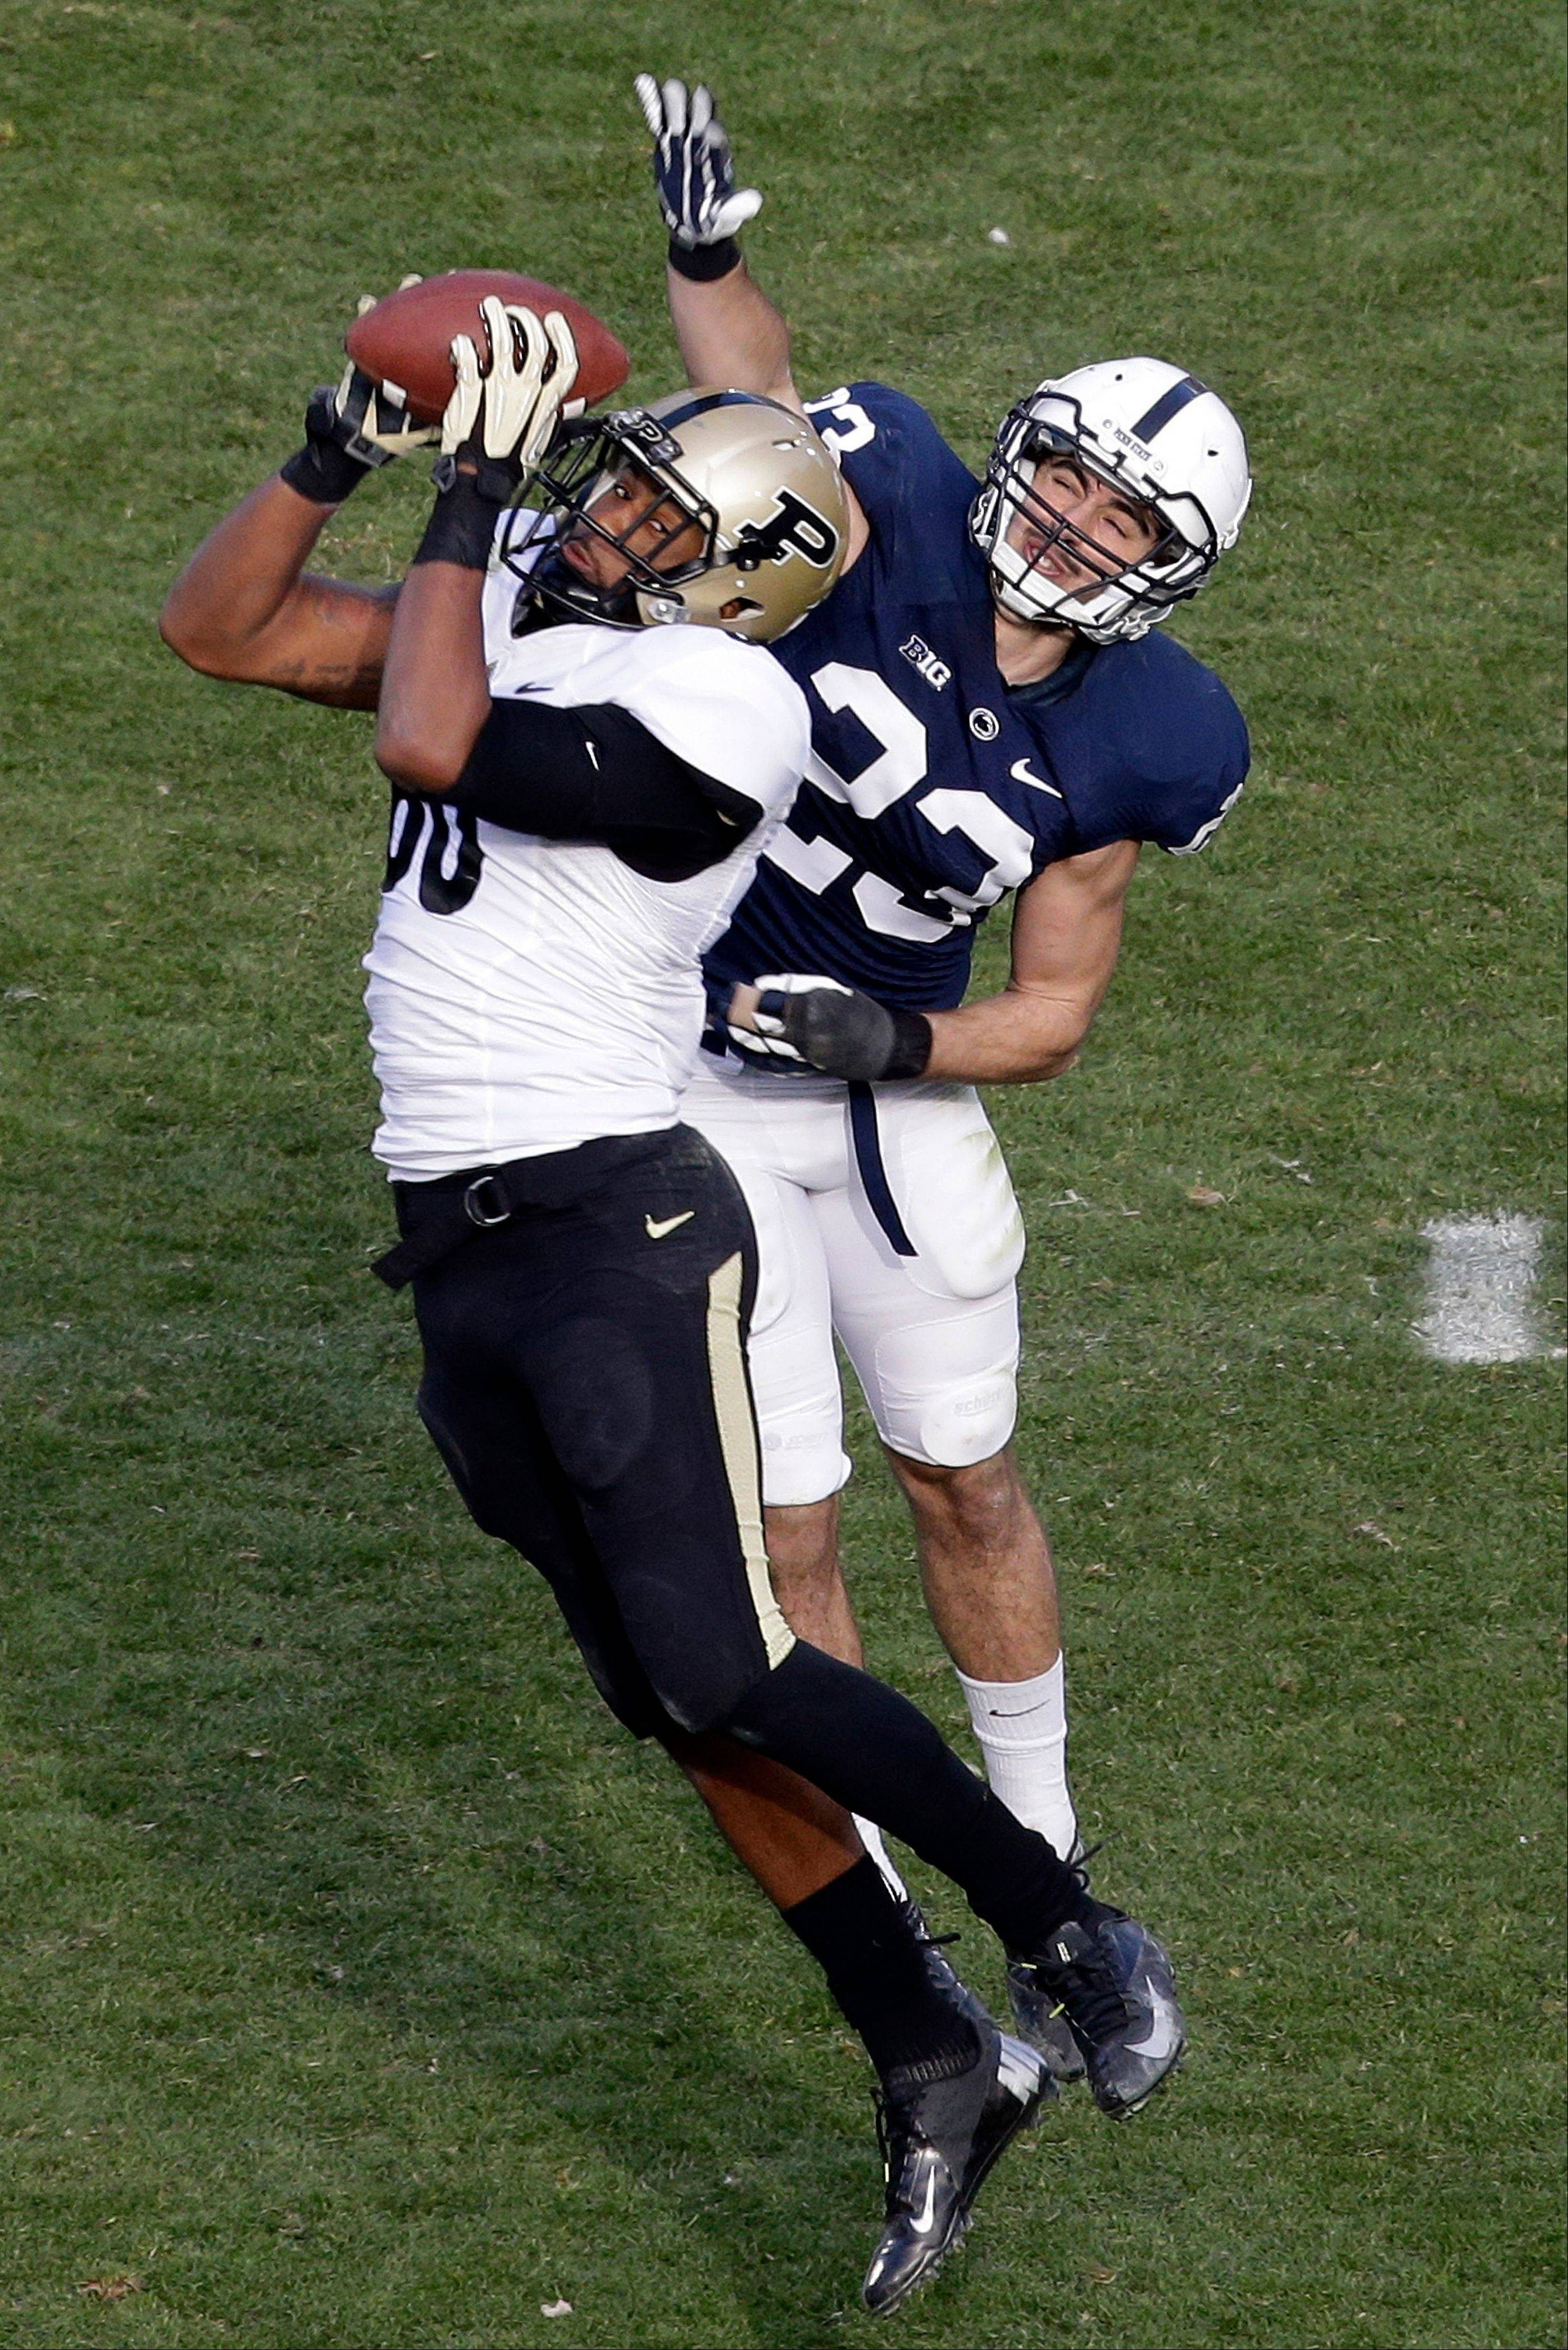 Purdue wide receiver DeAngelo Yancey hauls in a pass in front of Penn State safety Ryan Keiser for a 15-yard gain during the third quarter of last Saturday's game in State College, Pa.